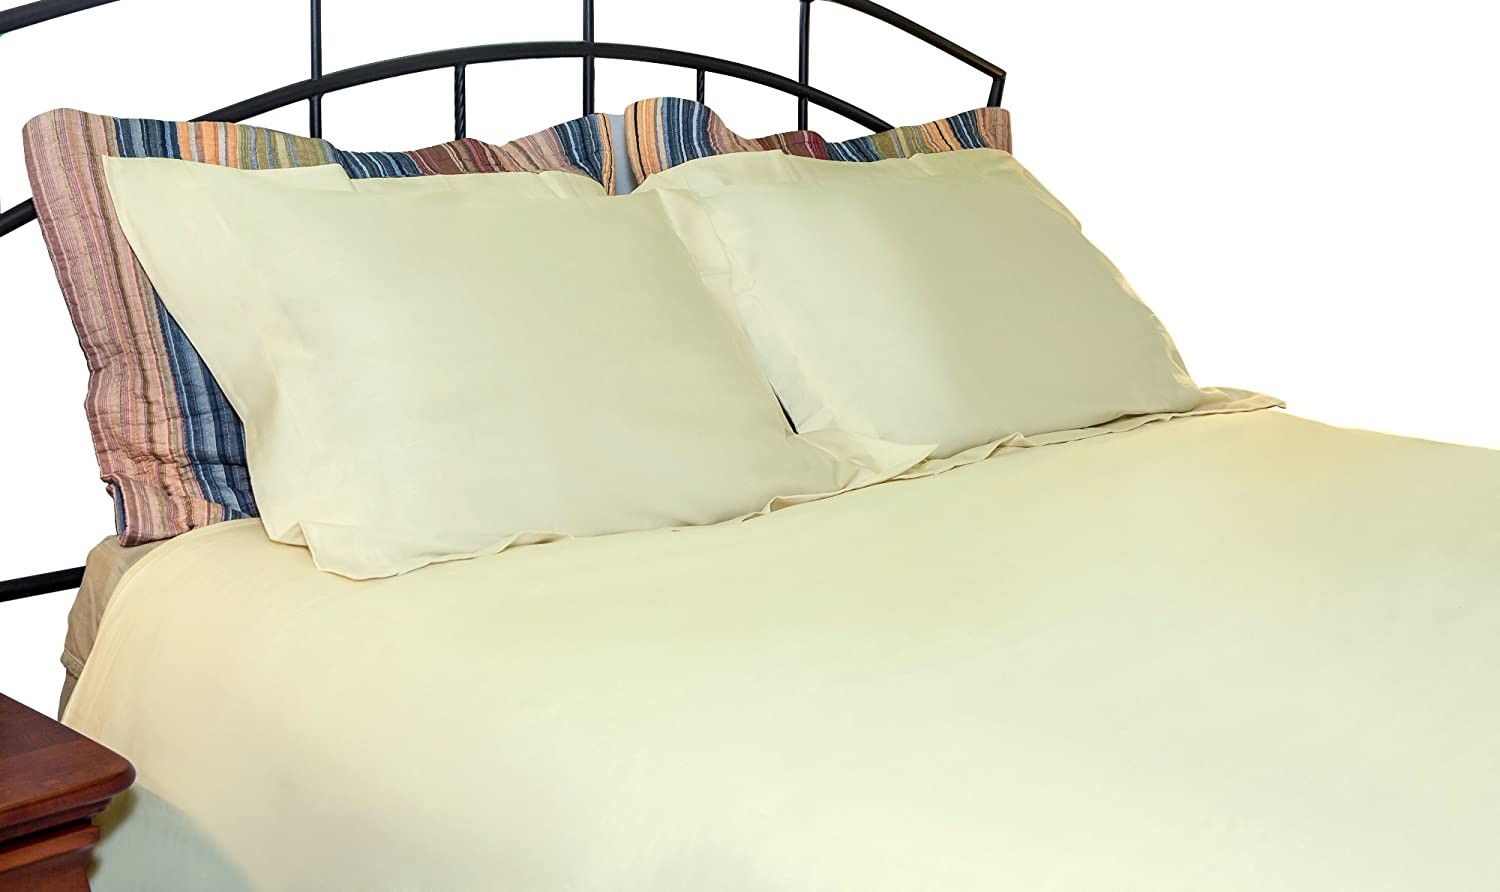 Organic Cotton Duvet Covers Set by Whisper Organics - G.O.T.S. Certified, 500 Thread Count (Full/Queen, White)